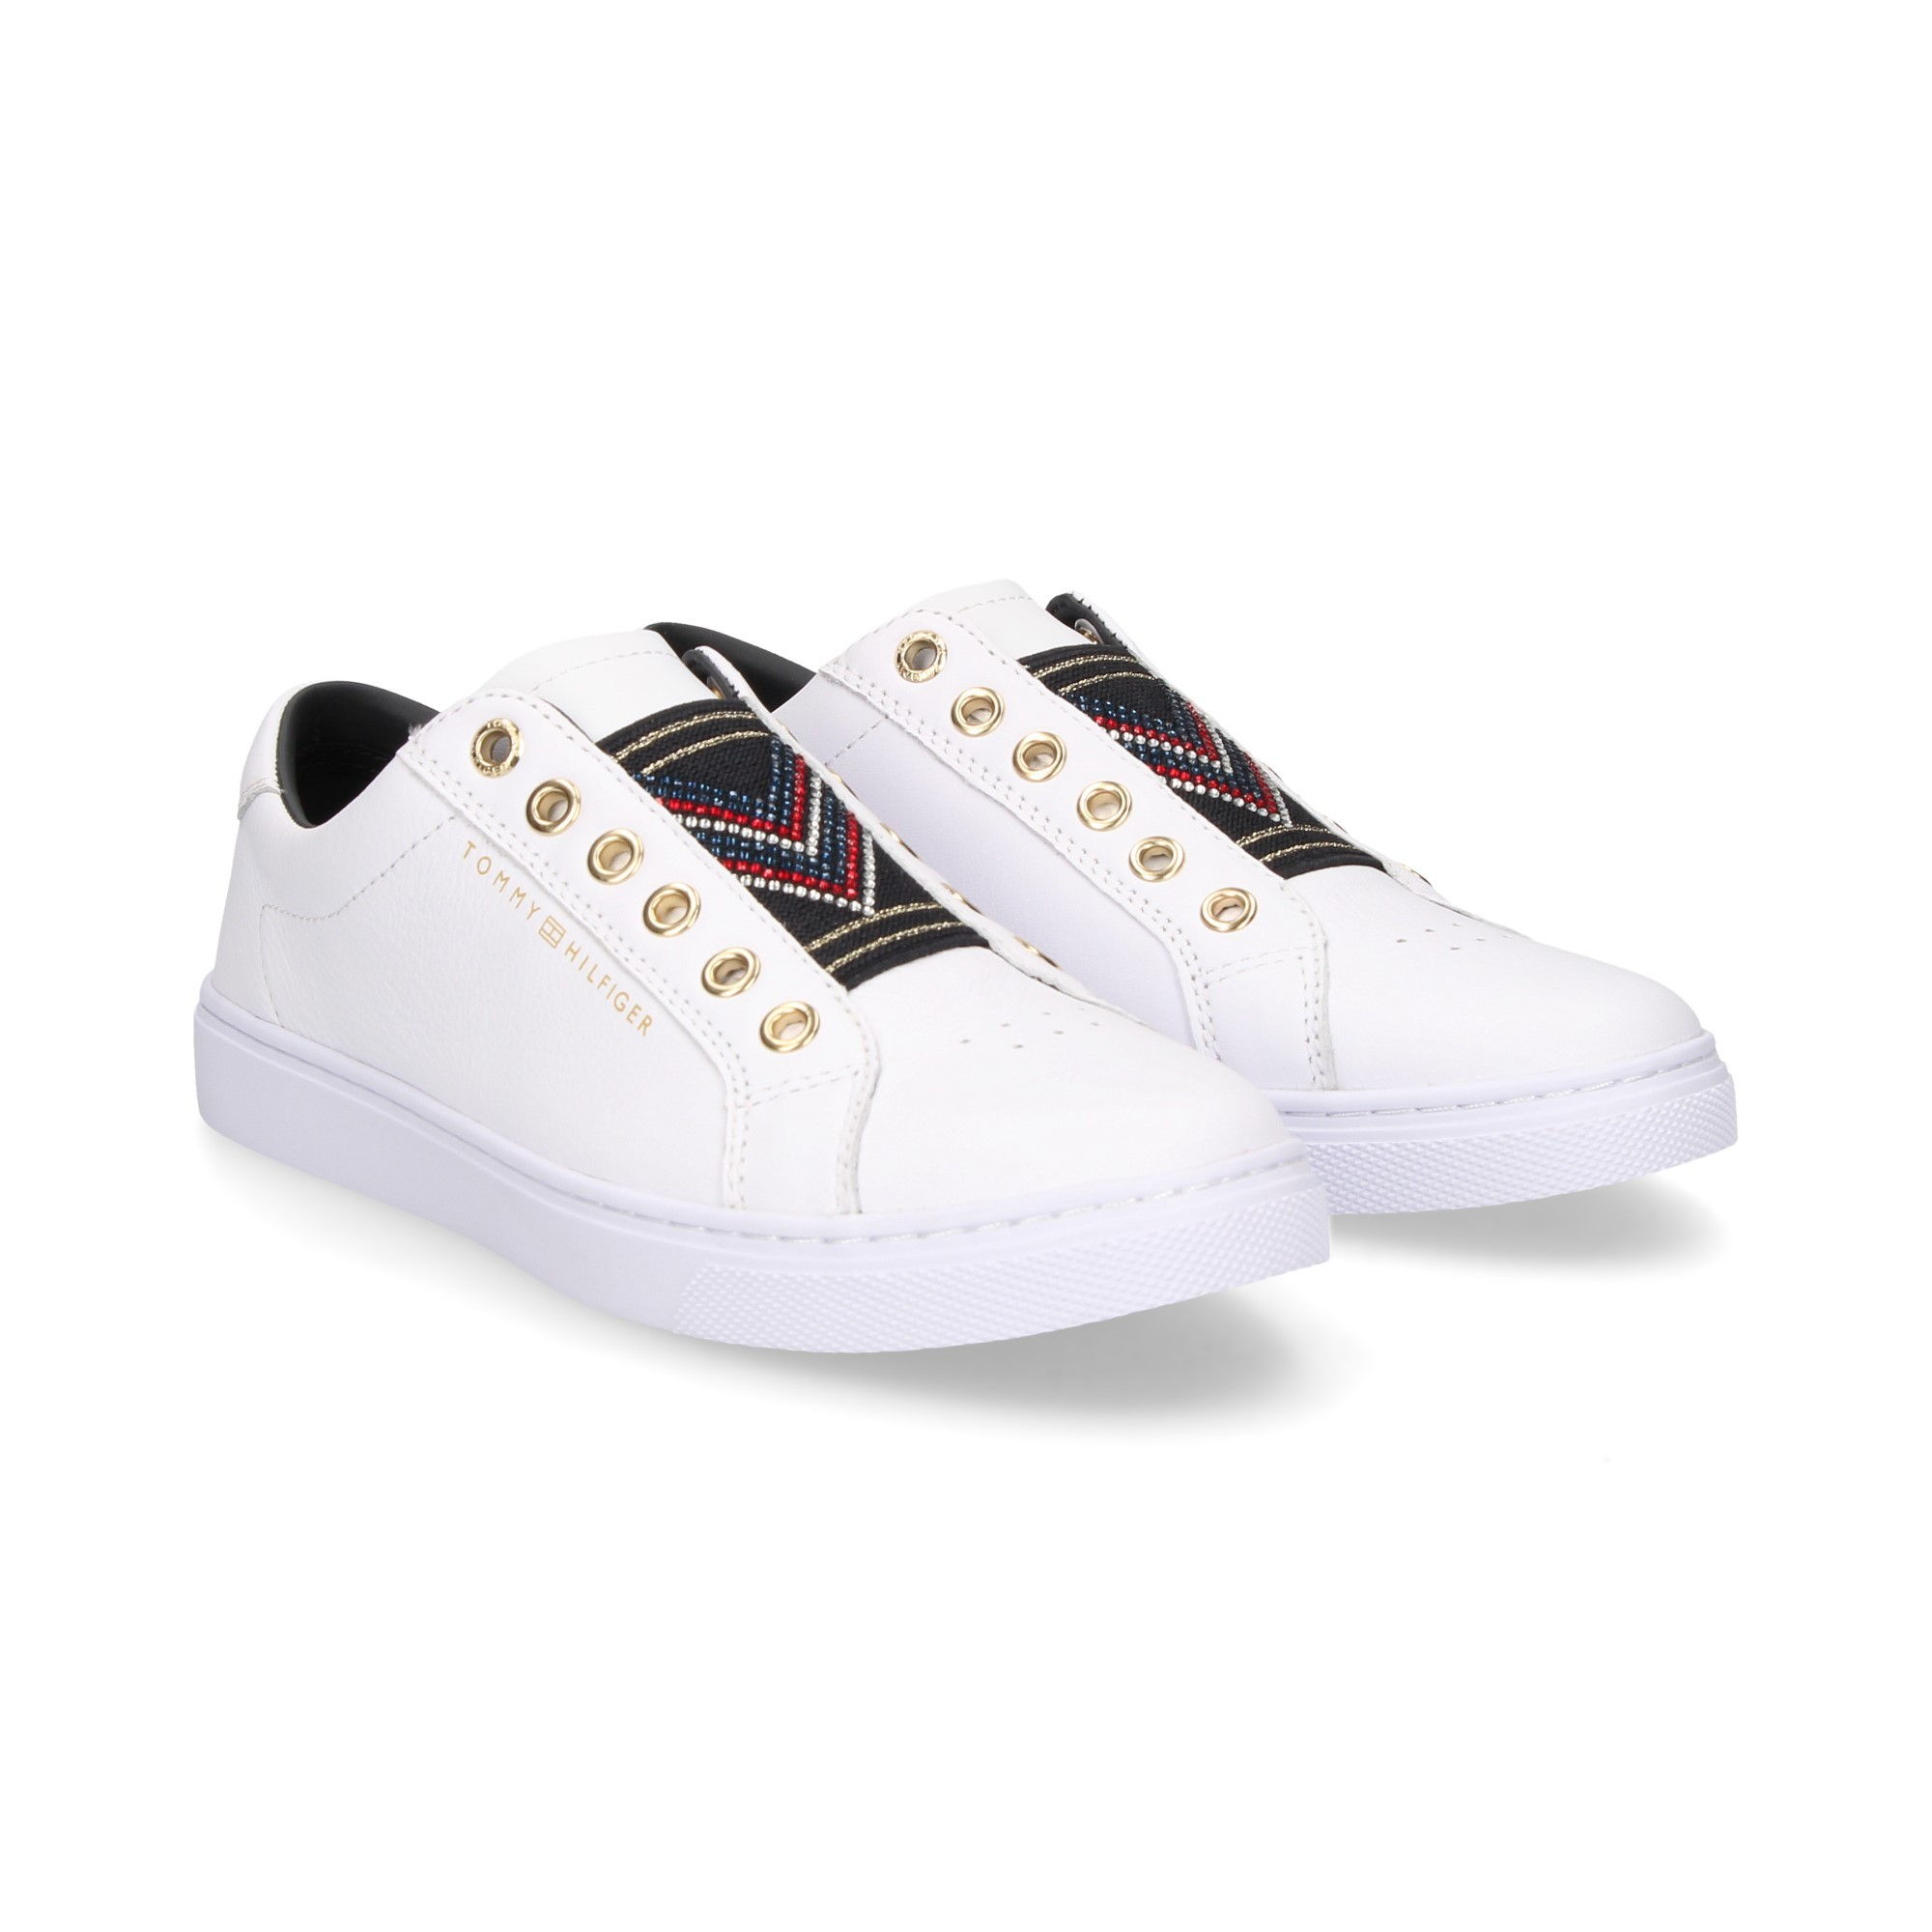 afb25a268f9ed TOMMY HILFIGER Women s Sneakers FW03592100 WHITE